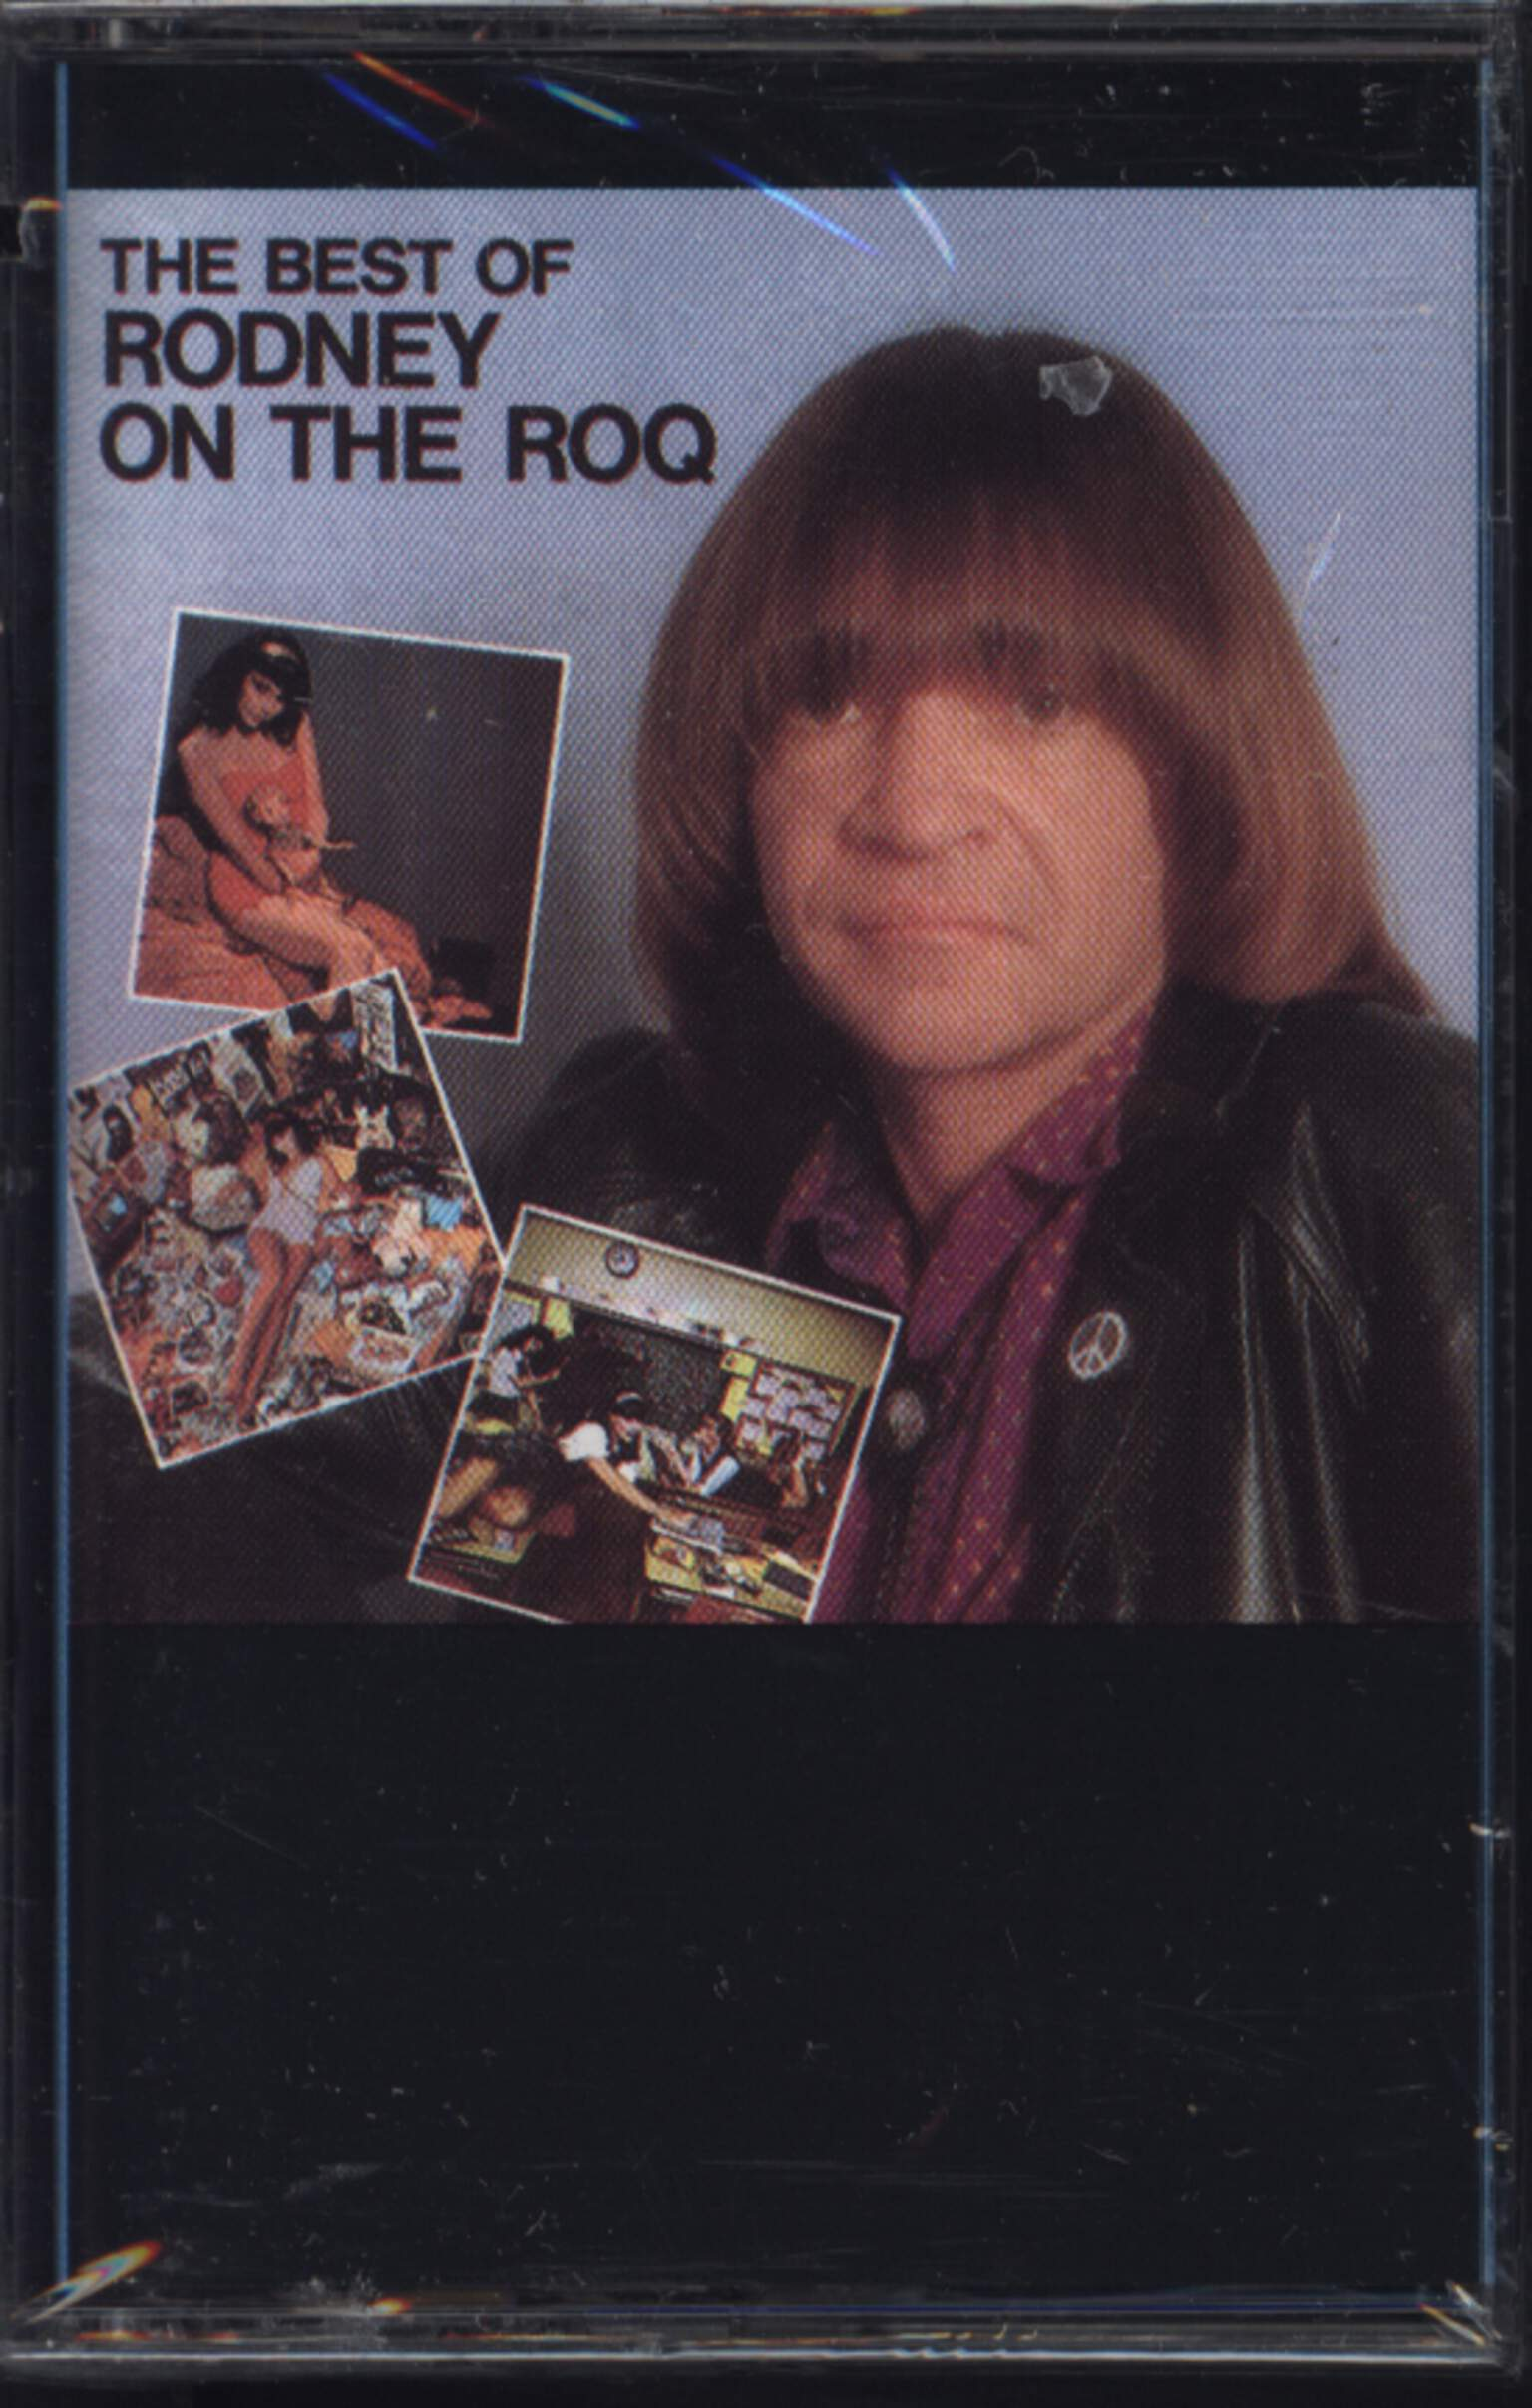 Various: The Best Of Rodney On The ROQ, Compact Cassette